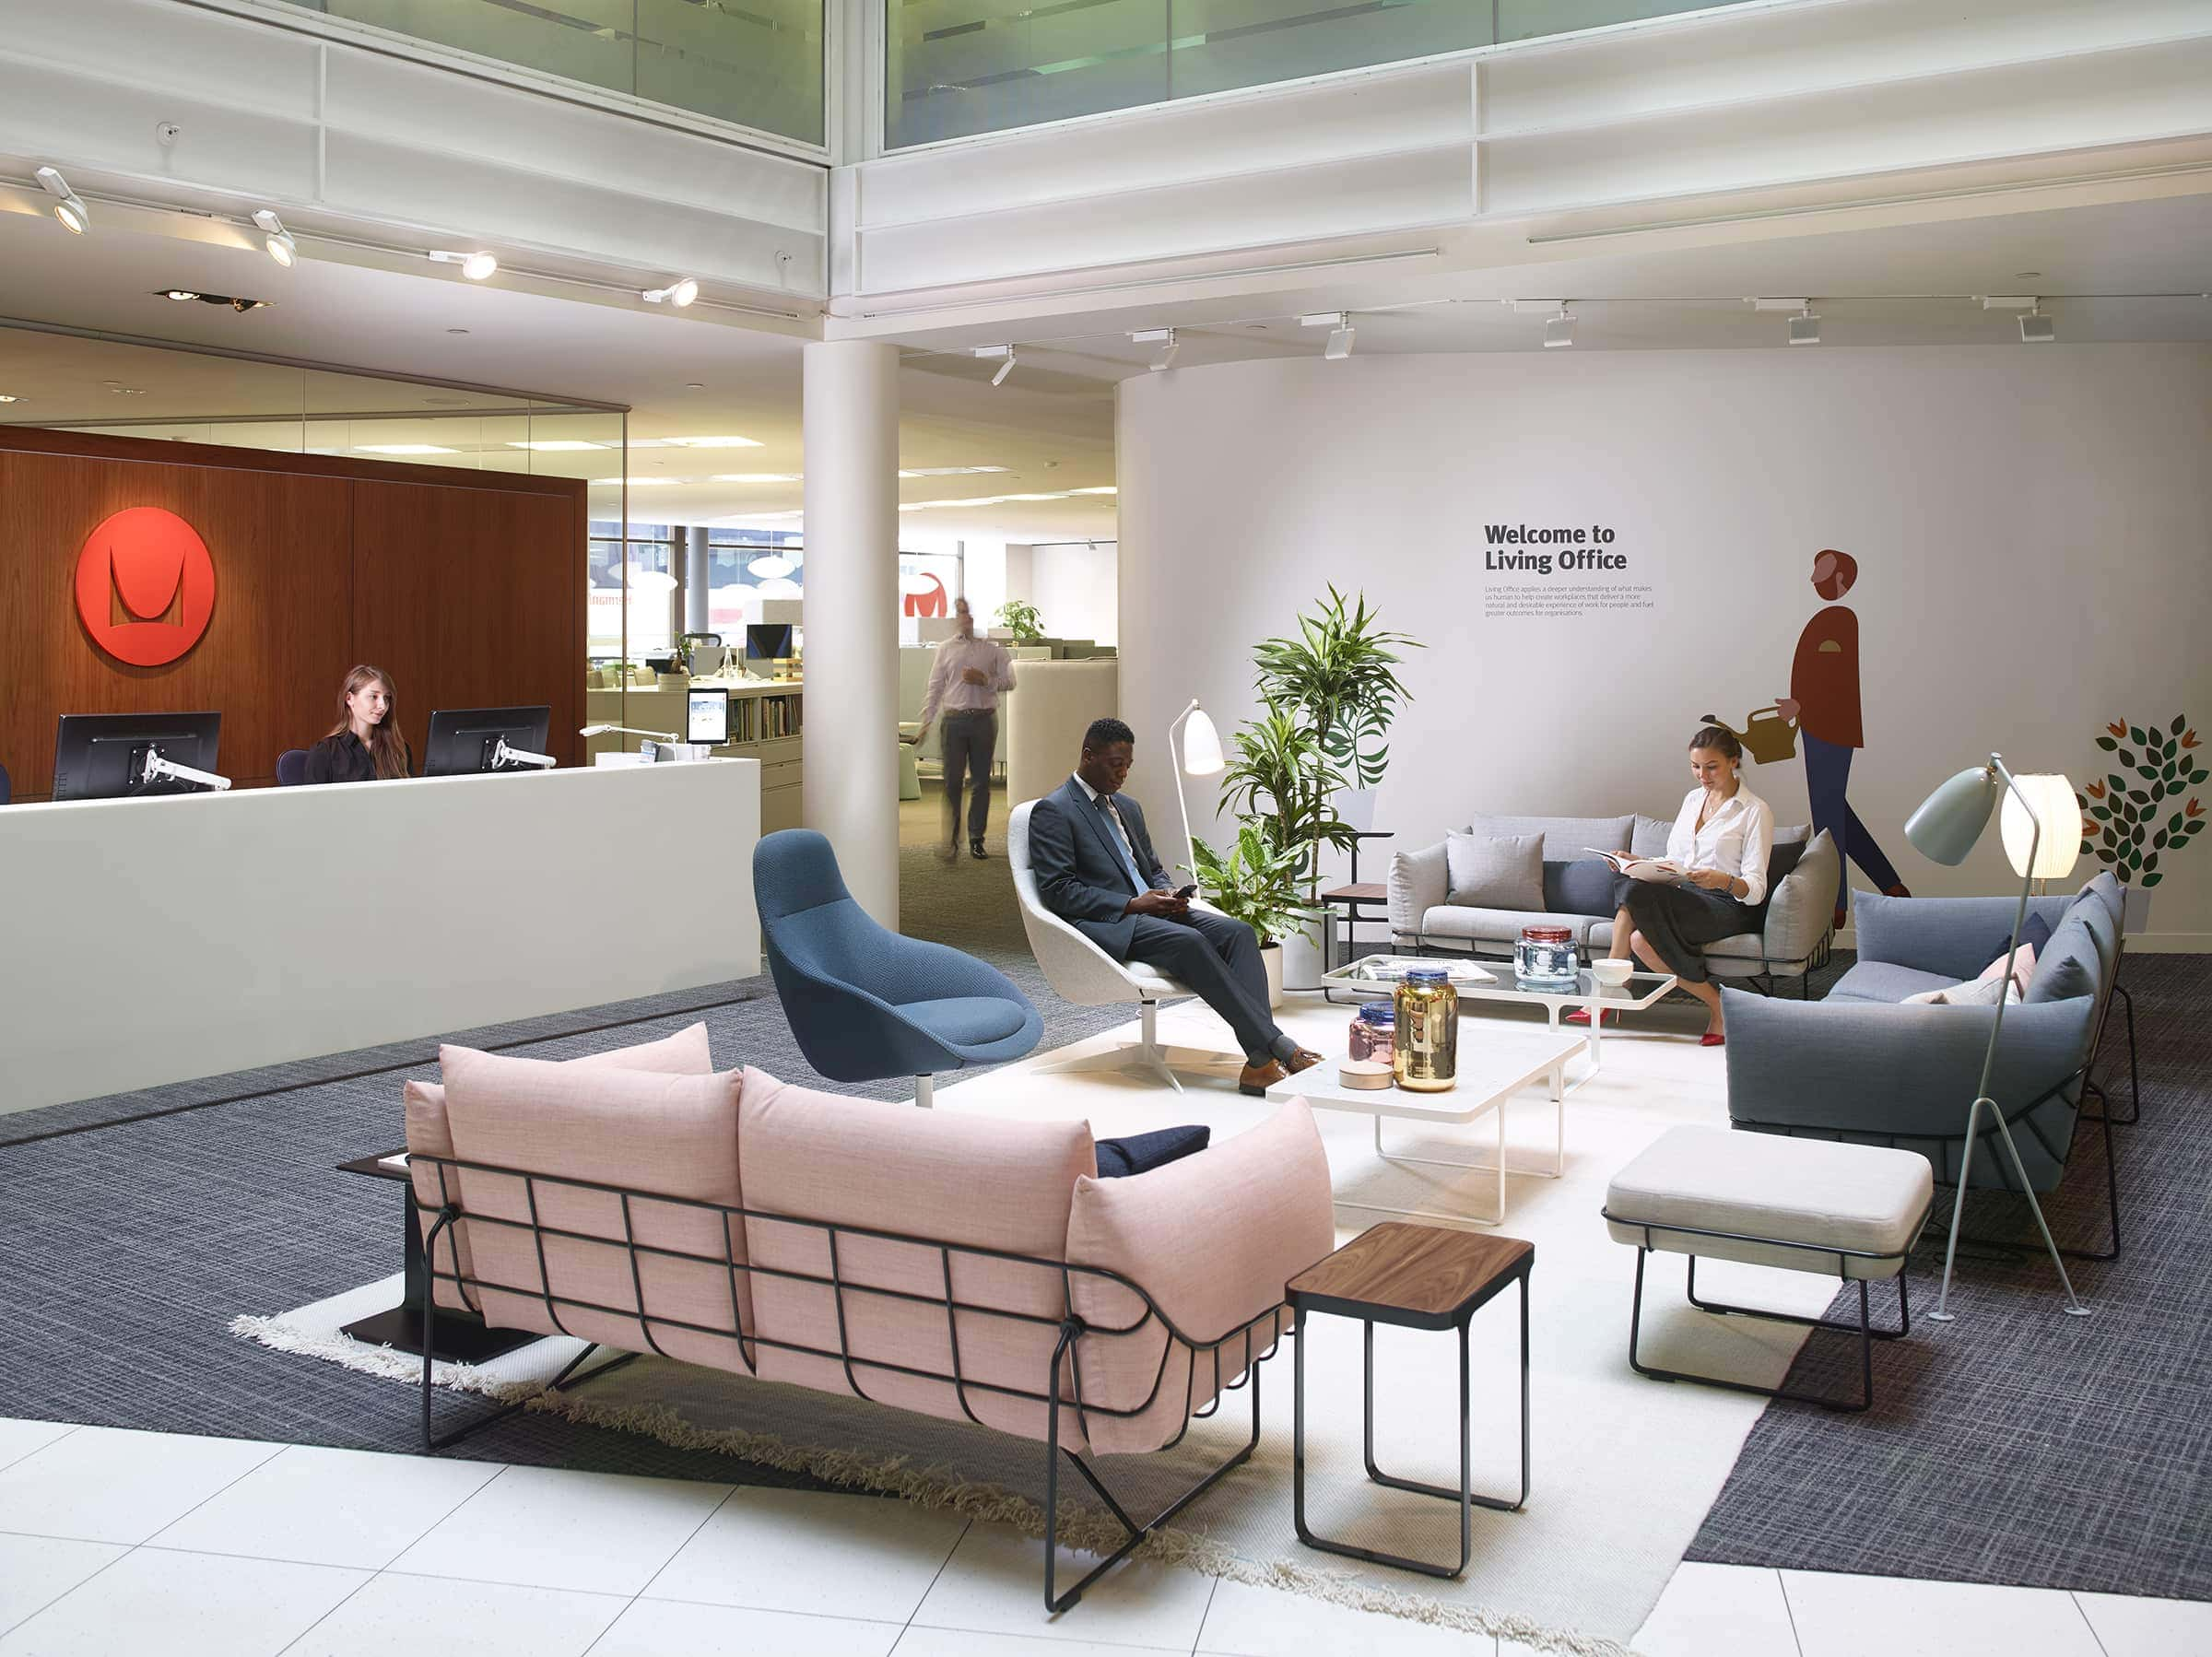 Herman Miller Have Rebooted Their London Showroom Basing Every Setting  Around Their Living Office Concept. Each Different Haven, Hive, Plaza Or  Workshop Is ...